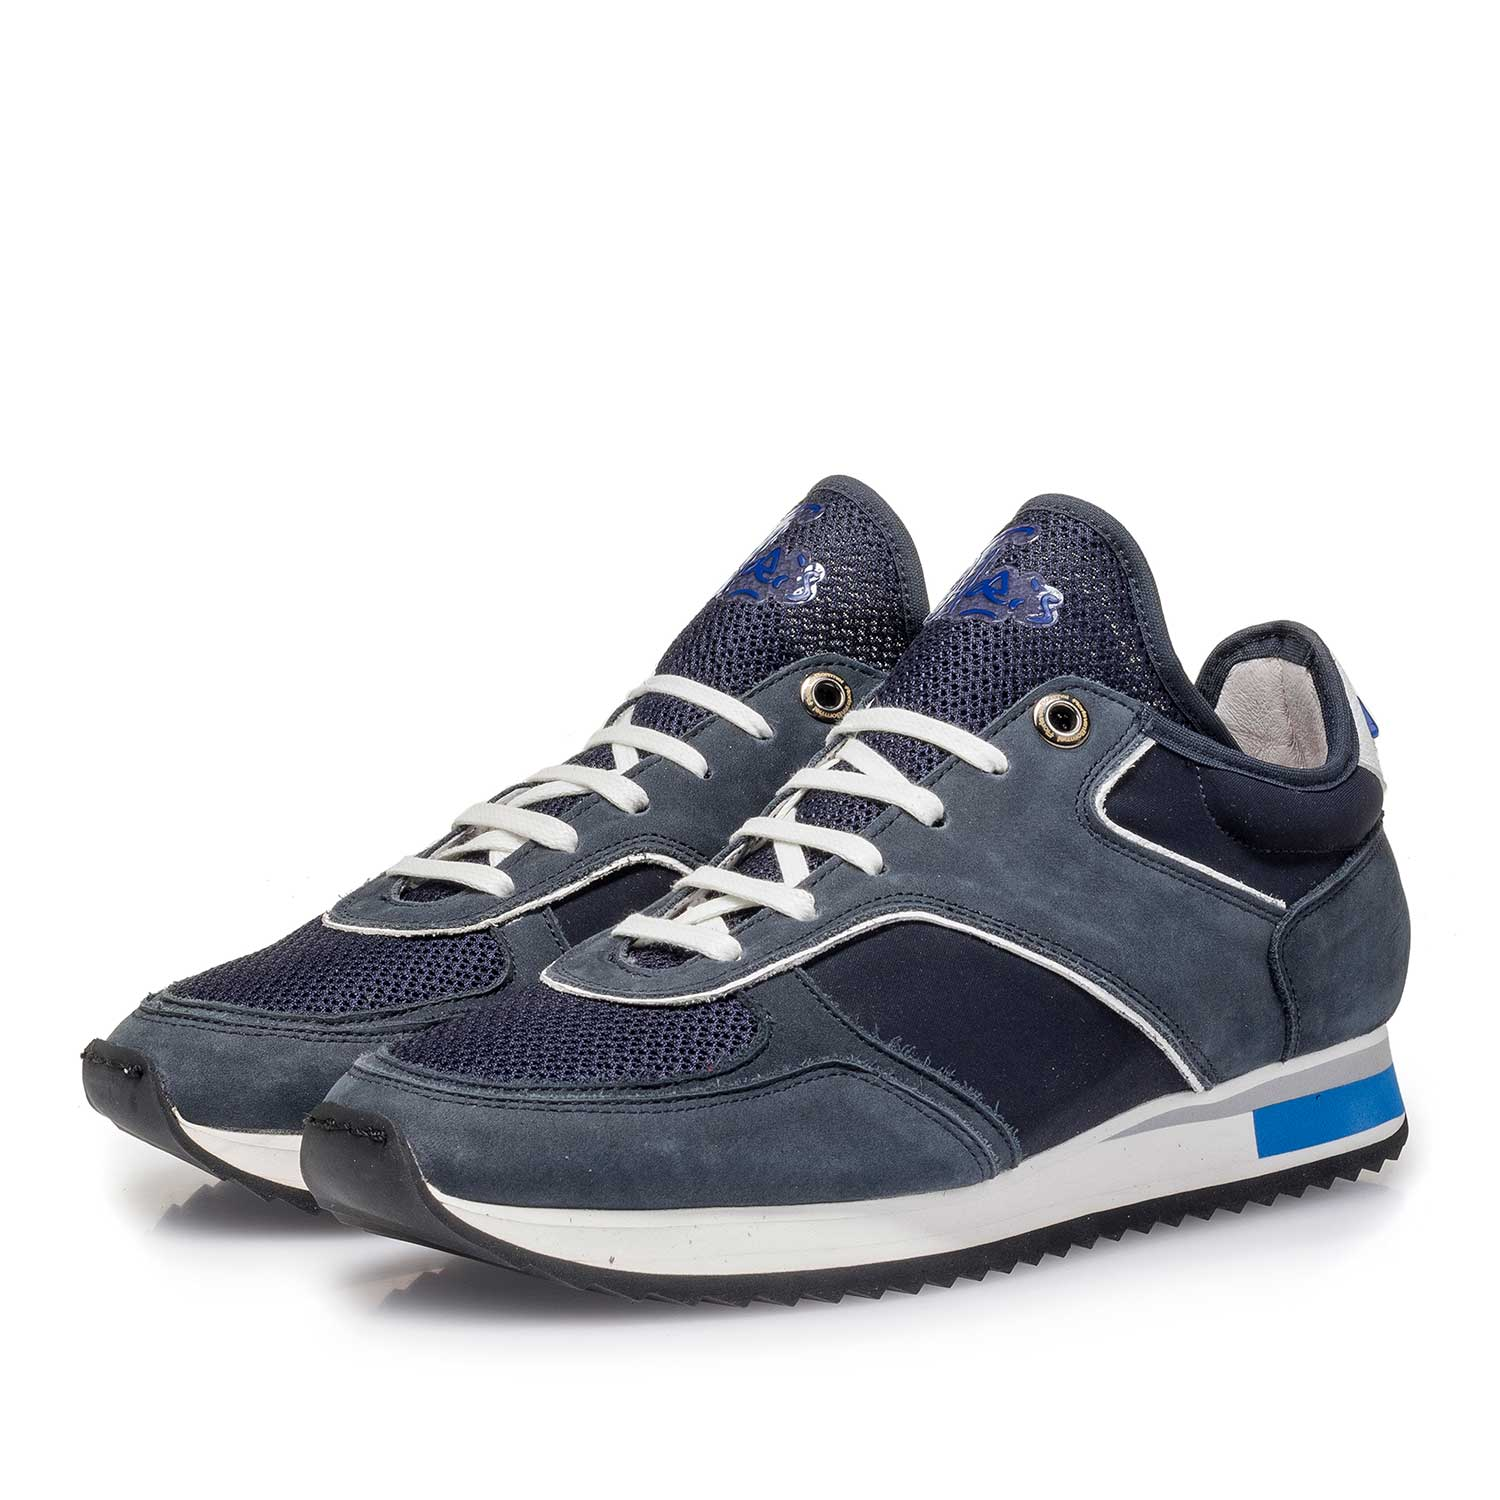 85261/05 - Dark blue nubuck leather sneaker